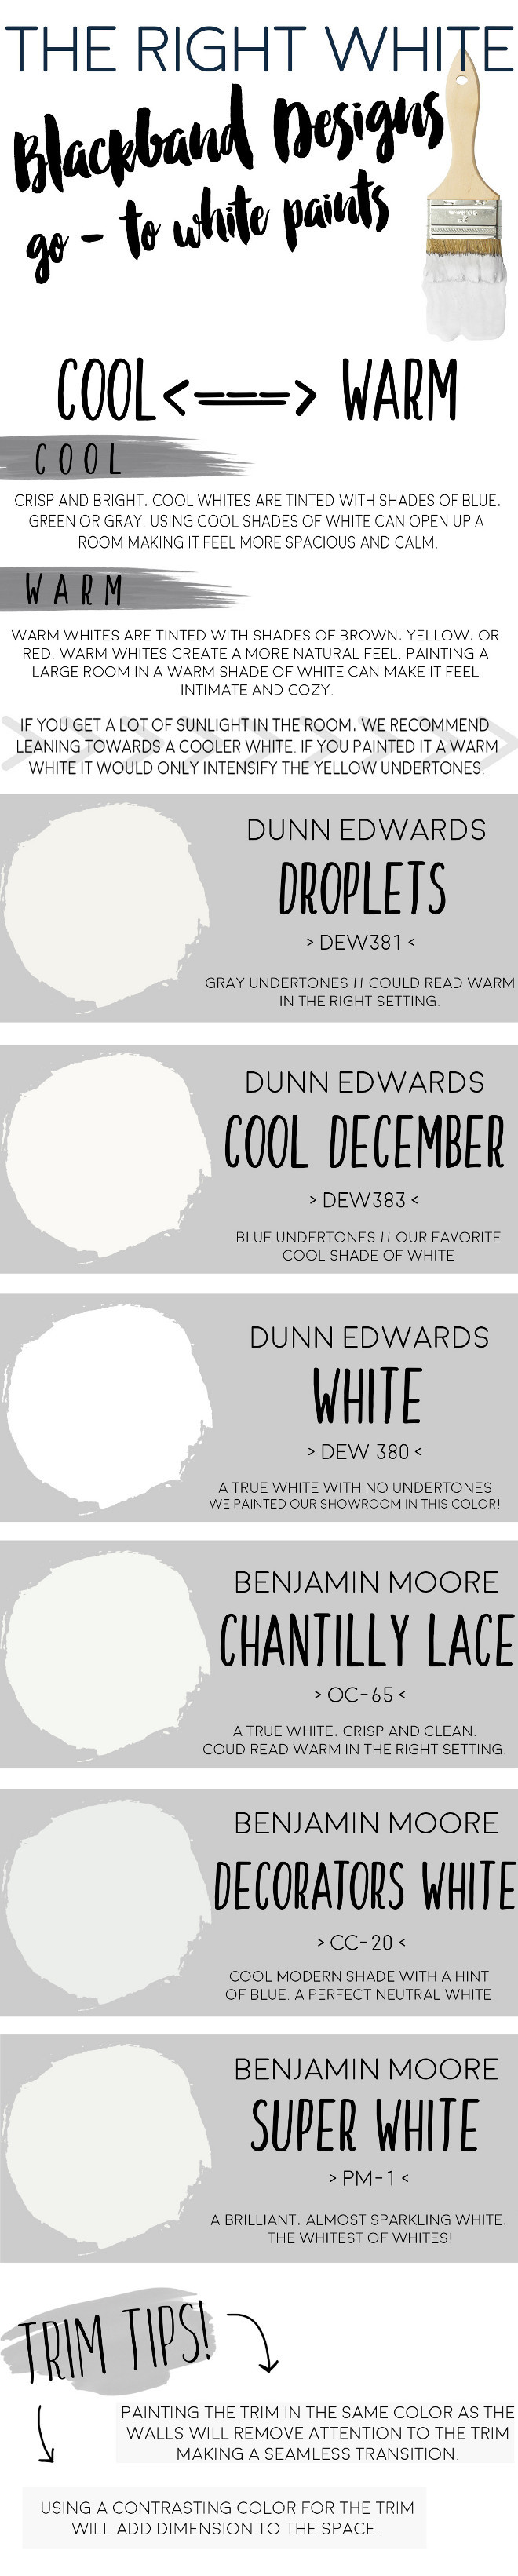 Designer Go-to White Paints. Cool and Warm White Paint. Dunn Edwards Droplets DEW 381. Dunn Edwards Cool December DEW 383. Dunn Edwards White DEW 380. Benjamin Moore Chantilly Lace OC-65. Benjamin Moore Decorators White CC-20. Benjamin Moore Super White PM-1.